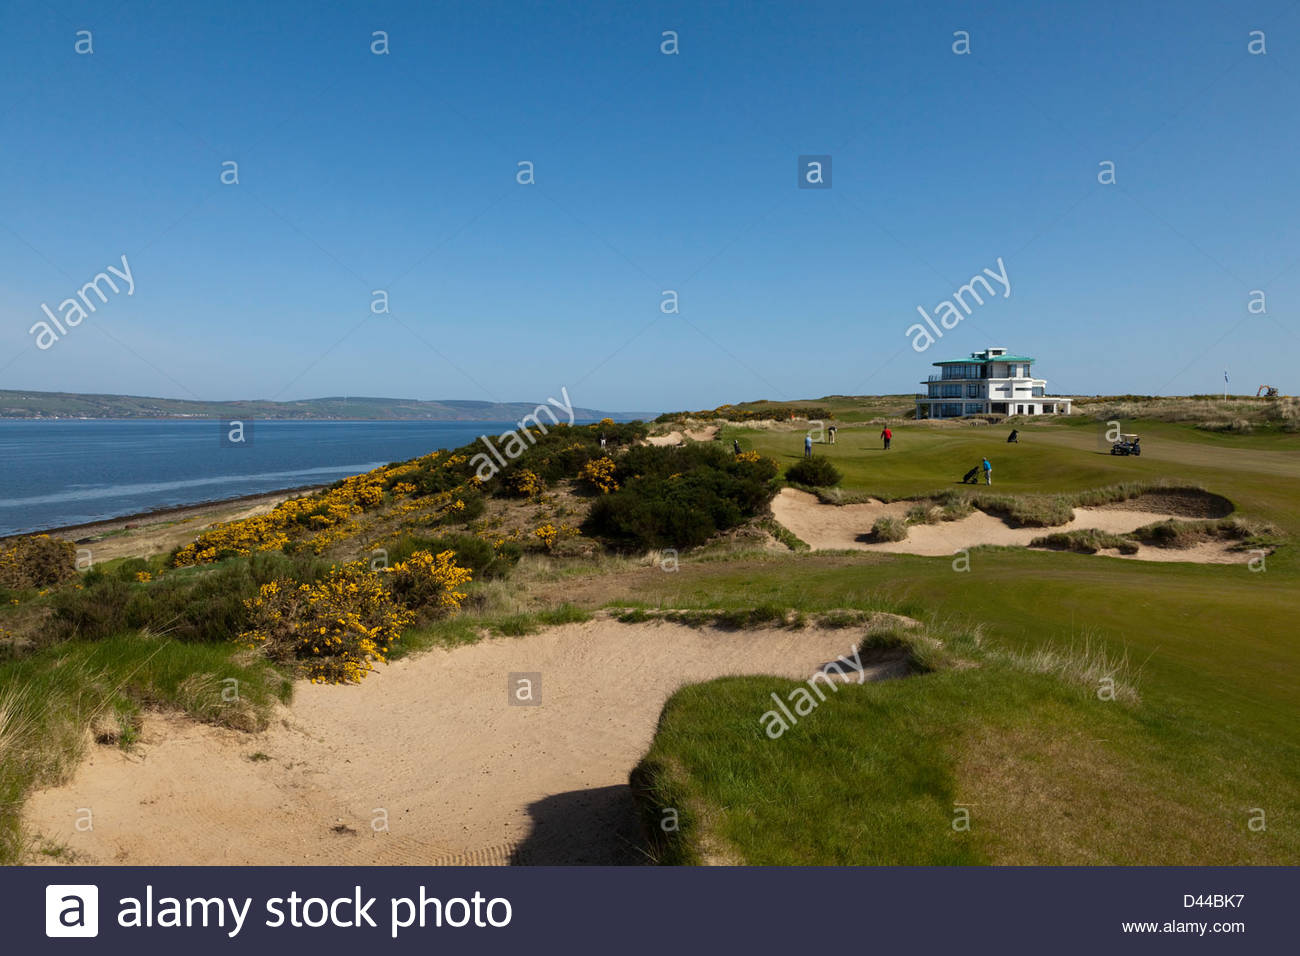 Castle Stuart Golf Links, situato tra Inverness e Nairn, sulla Scozia Moray Firth coast. Immagini Stock